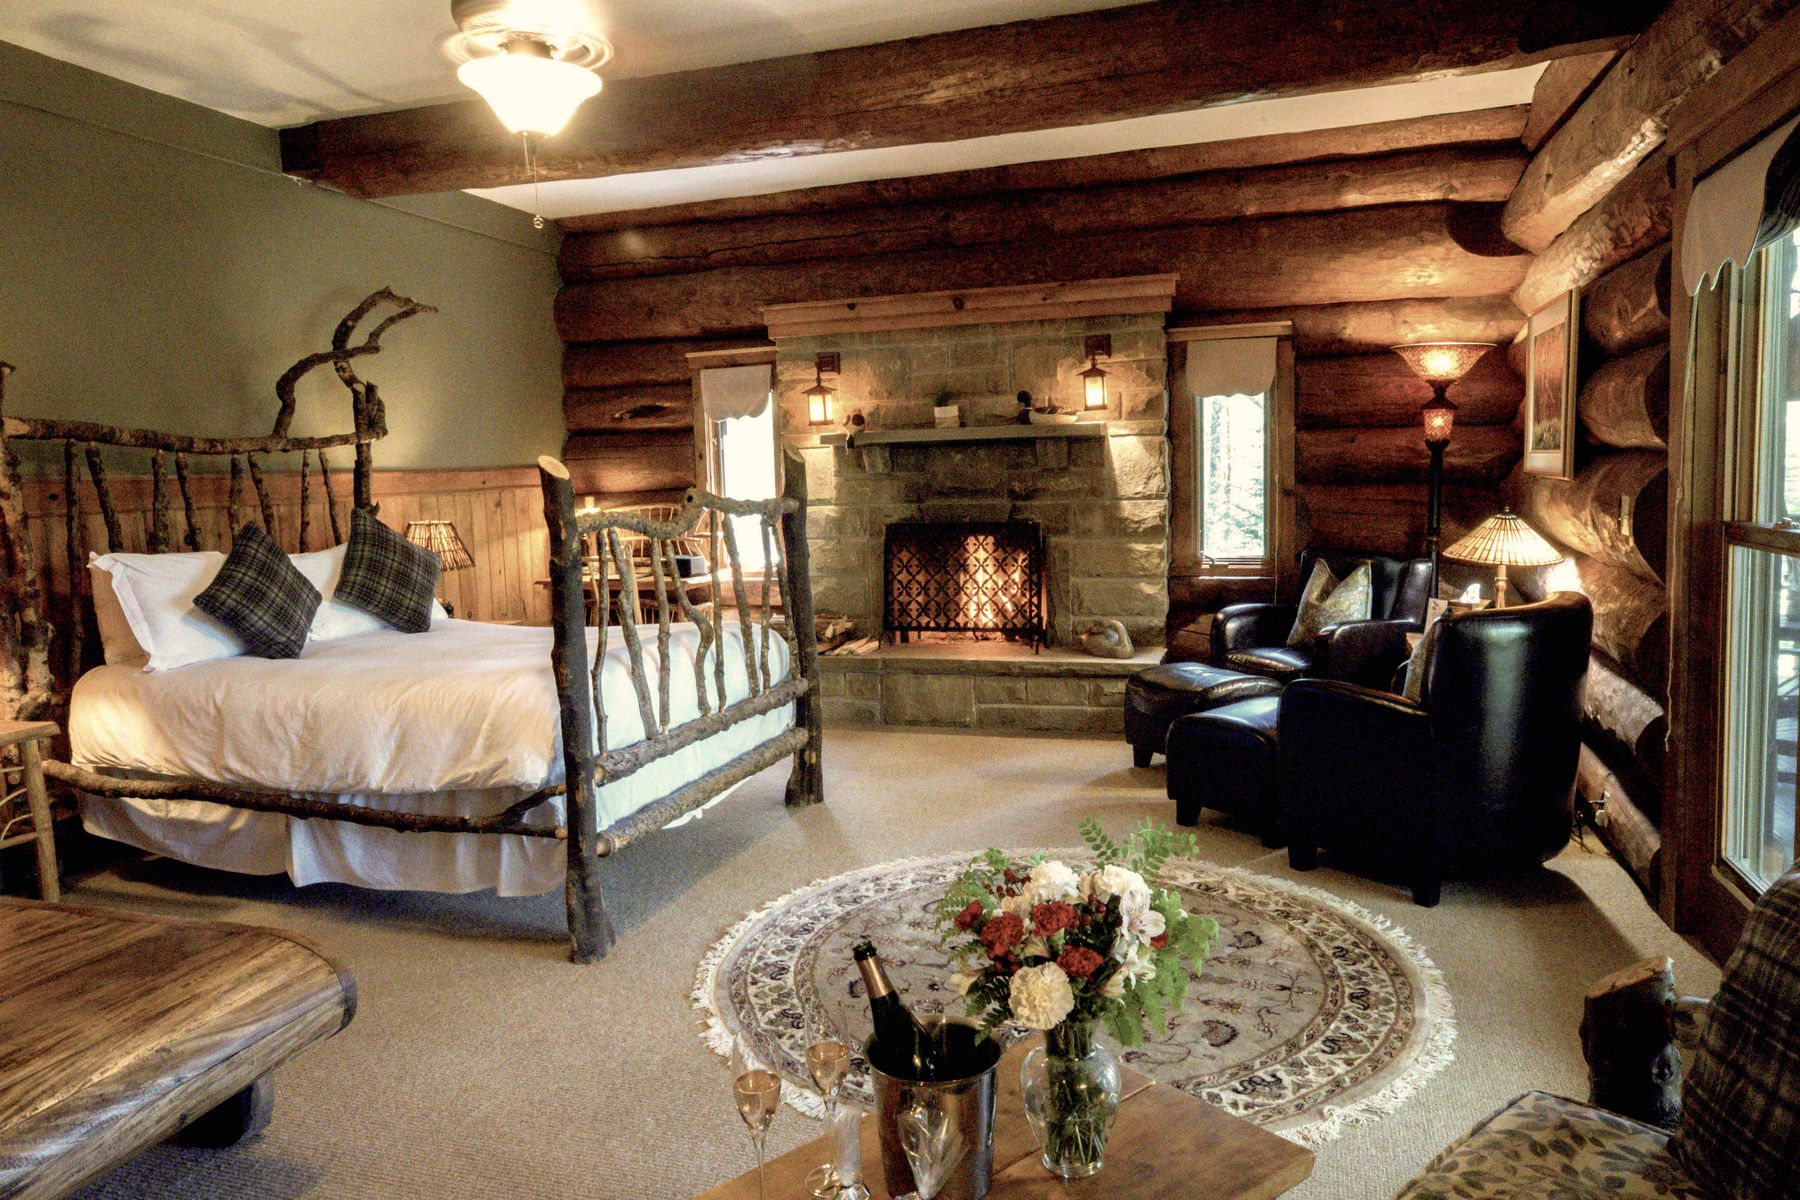 cozy suite in Trout Point Lodge. Bed, fireplace, table with a bottle of champagne and two glasses poured.